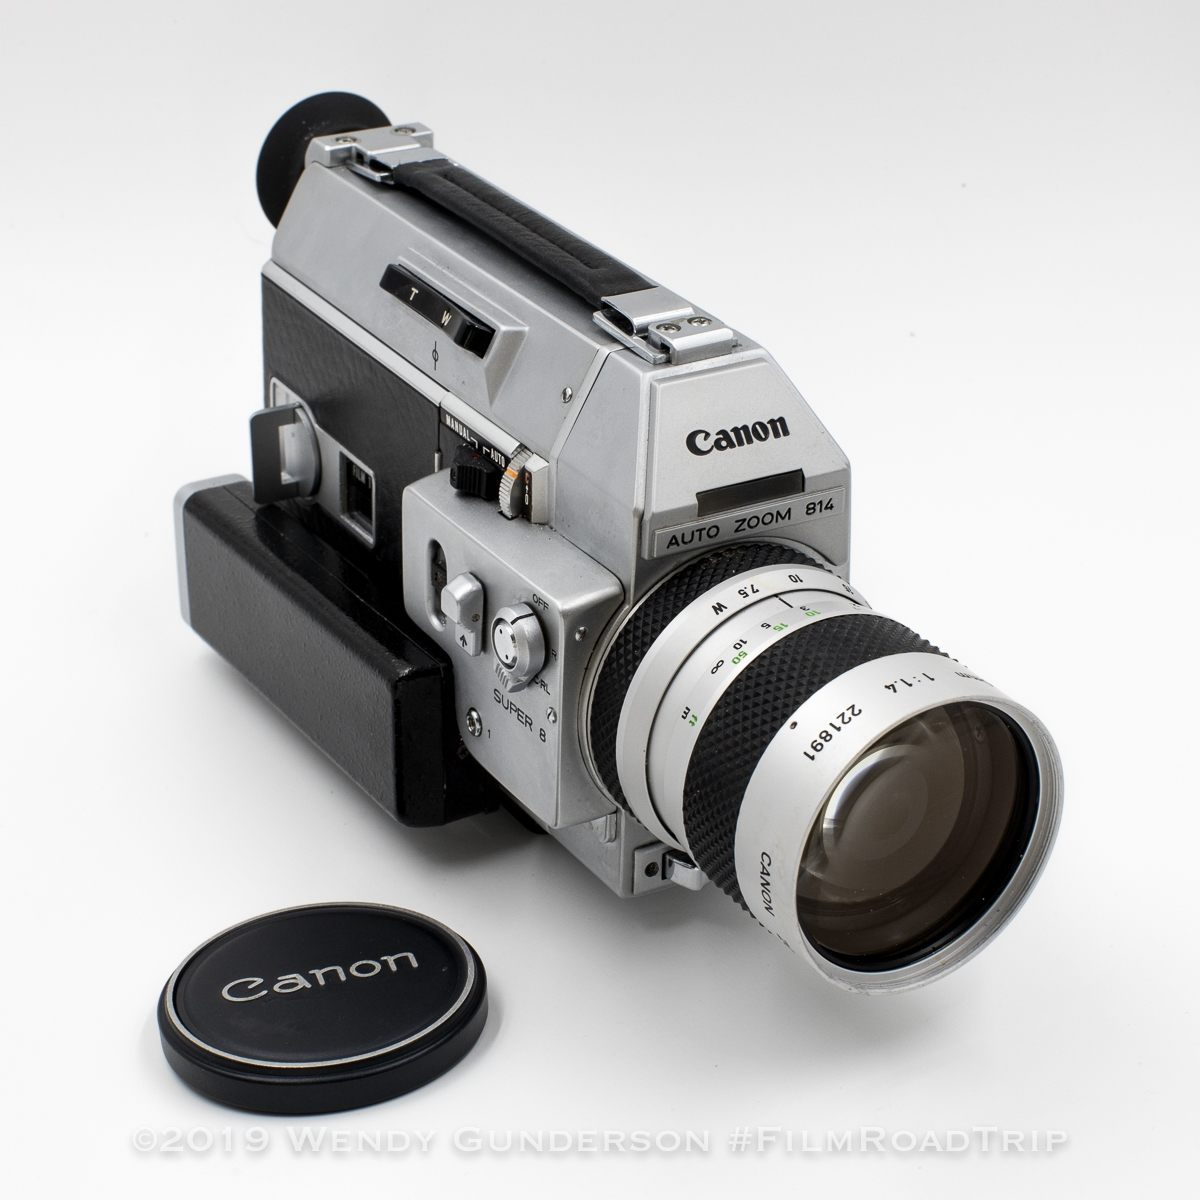 Super 8 Film: Fun with the Canon Auto Zoom 814 - Film Road Trip